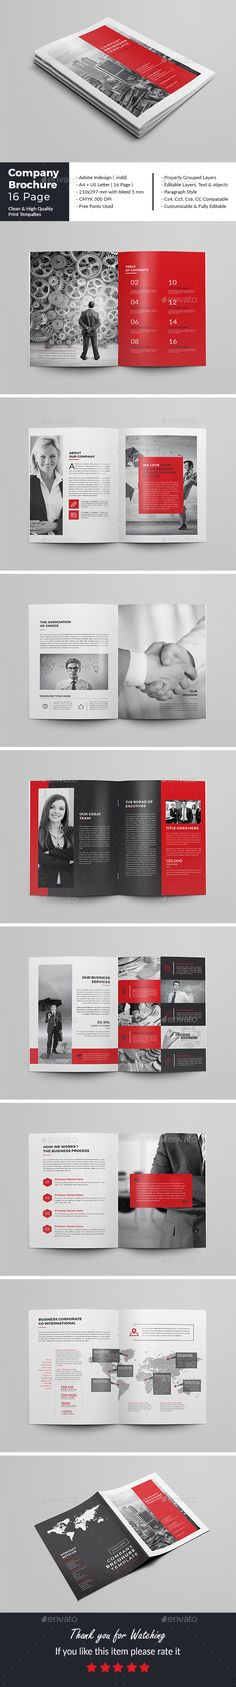 Company Brochure Template 16 Page